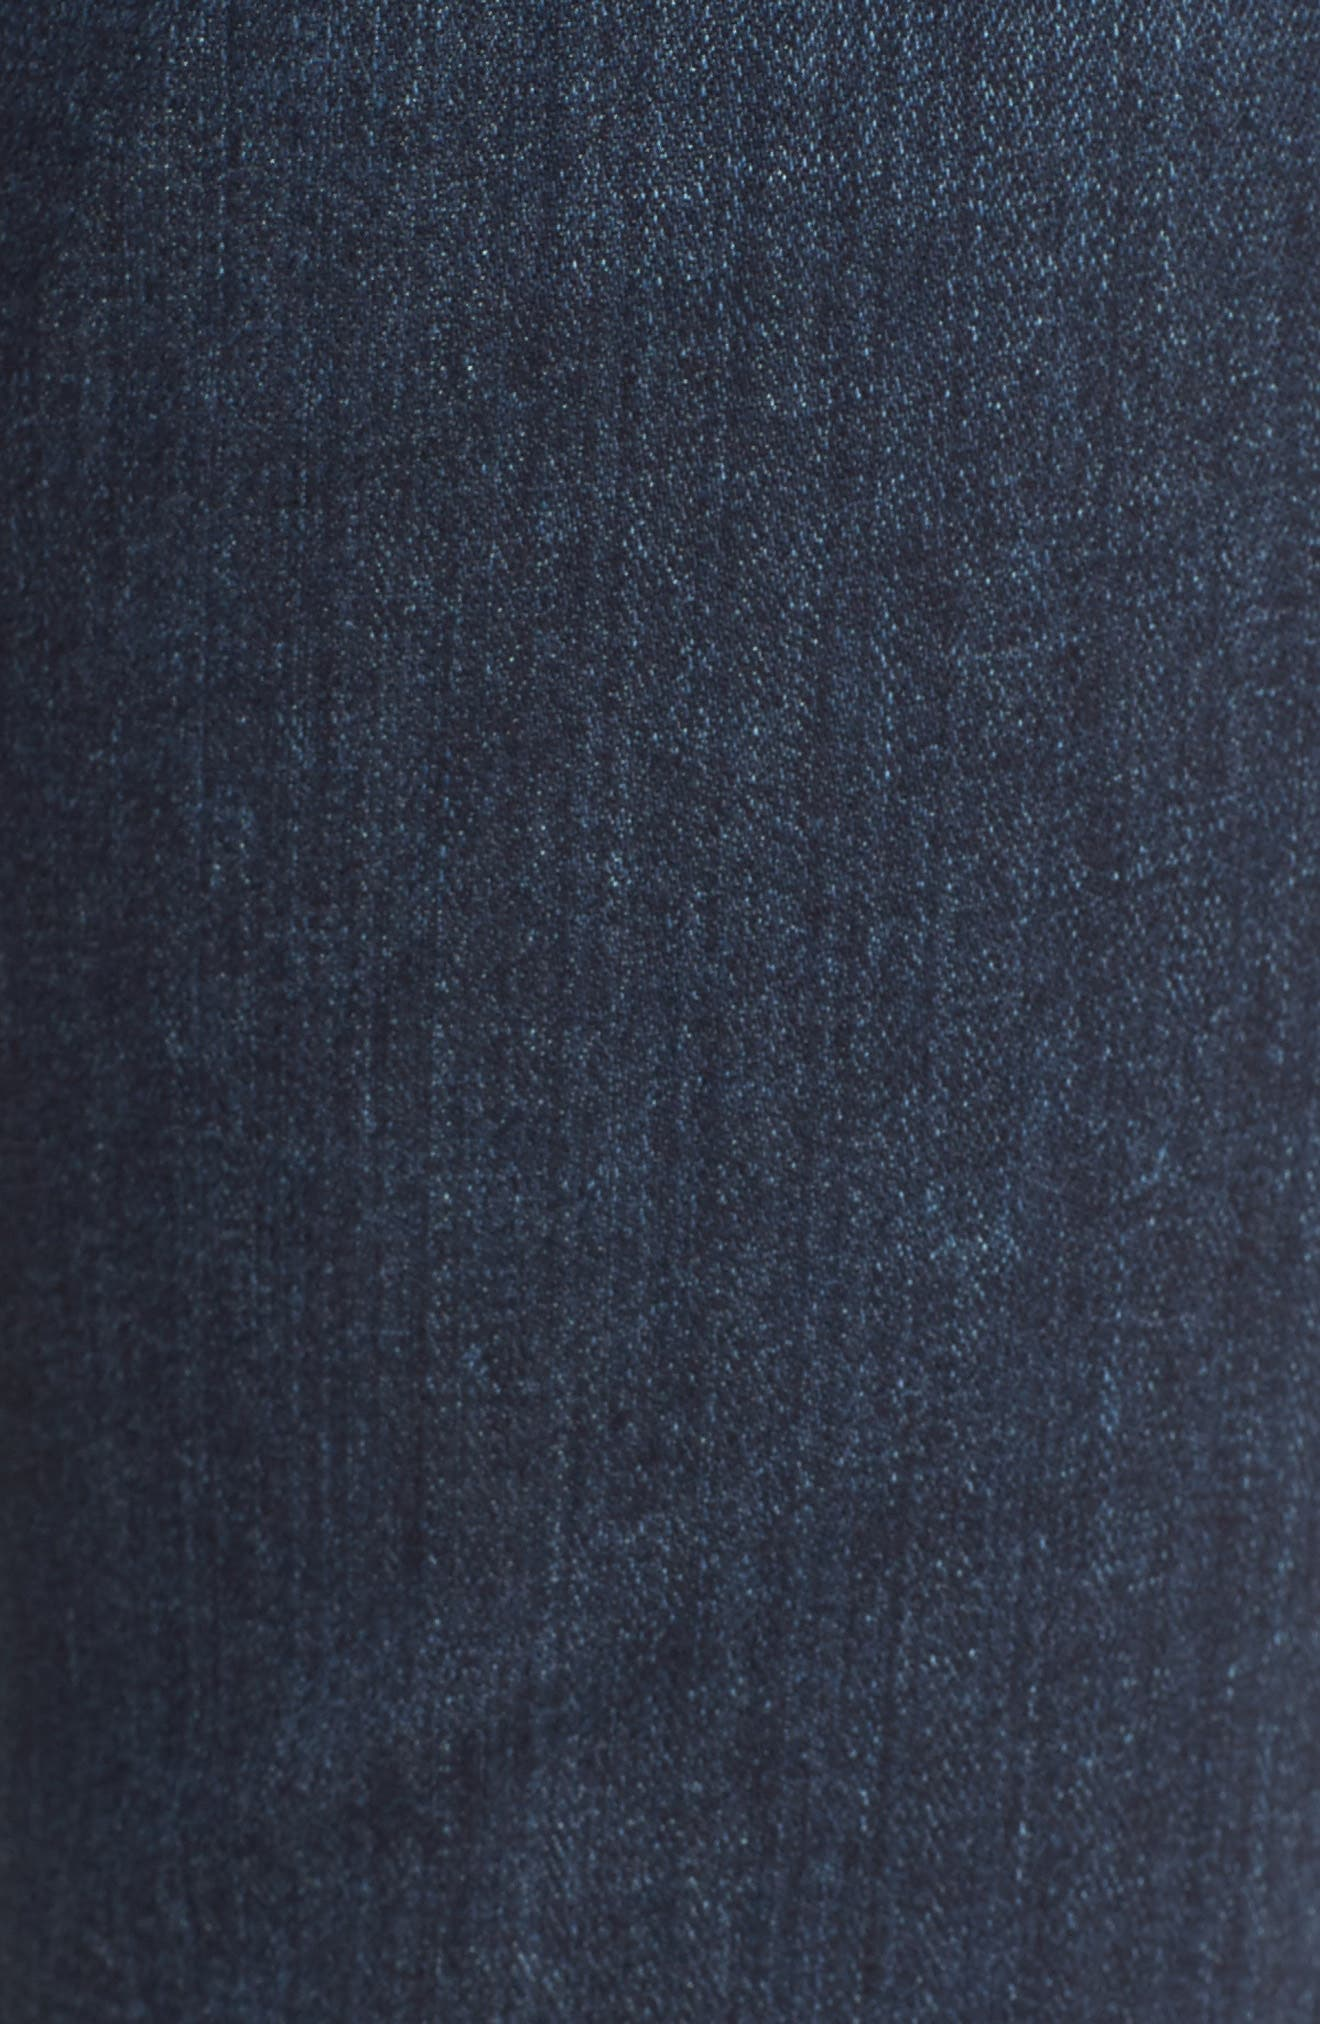 Beth Baby Bootcut Jeans,                             Alternate thumbnail 5, color,                             422